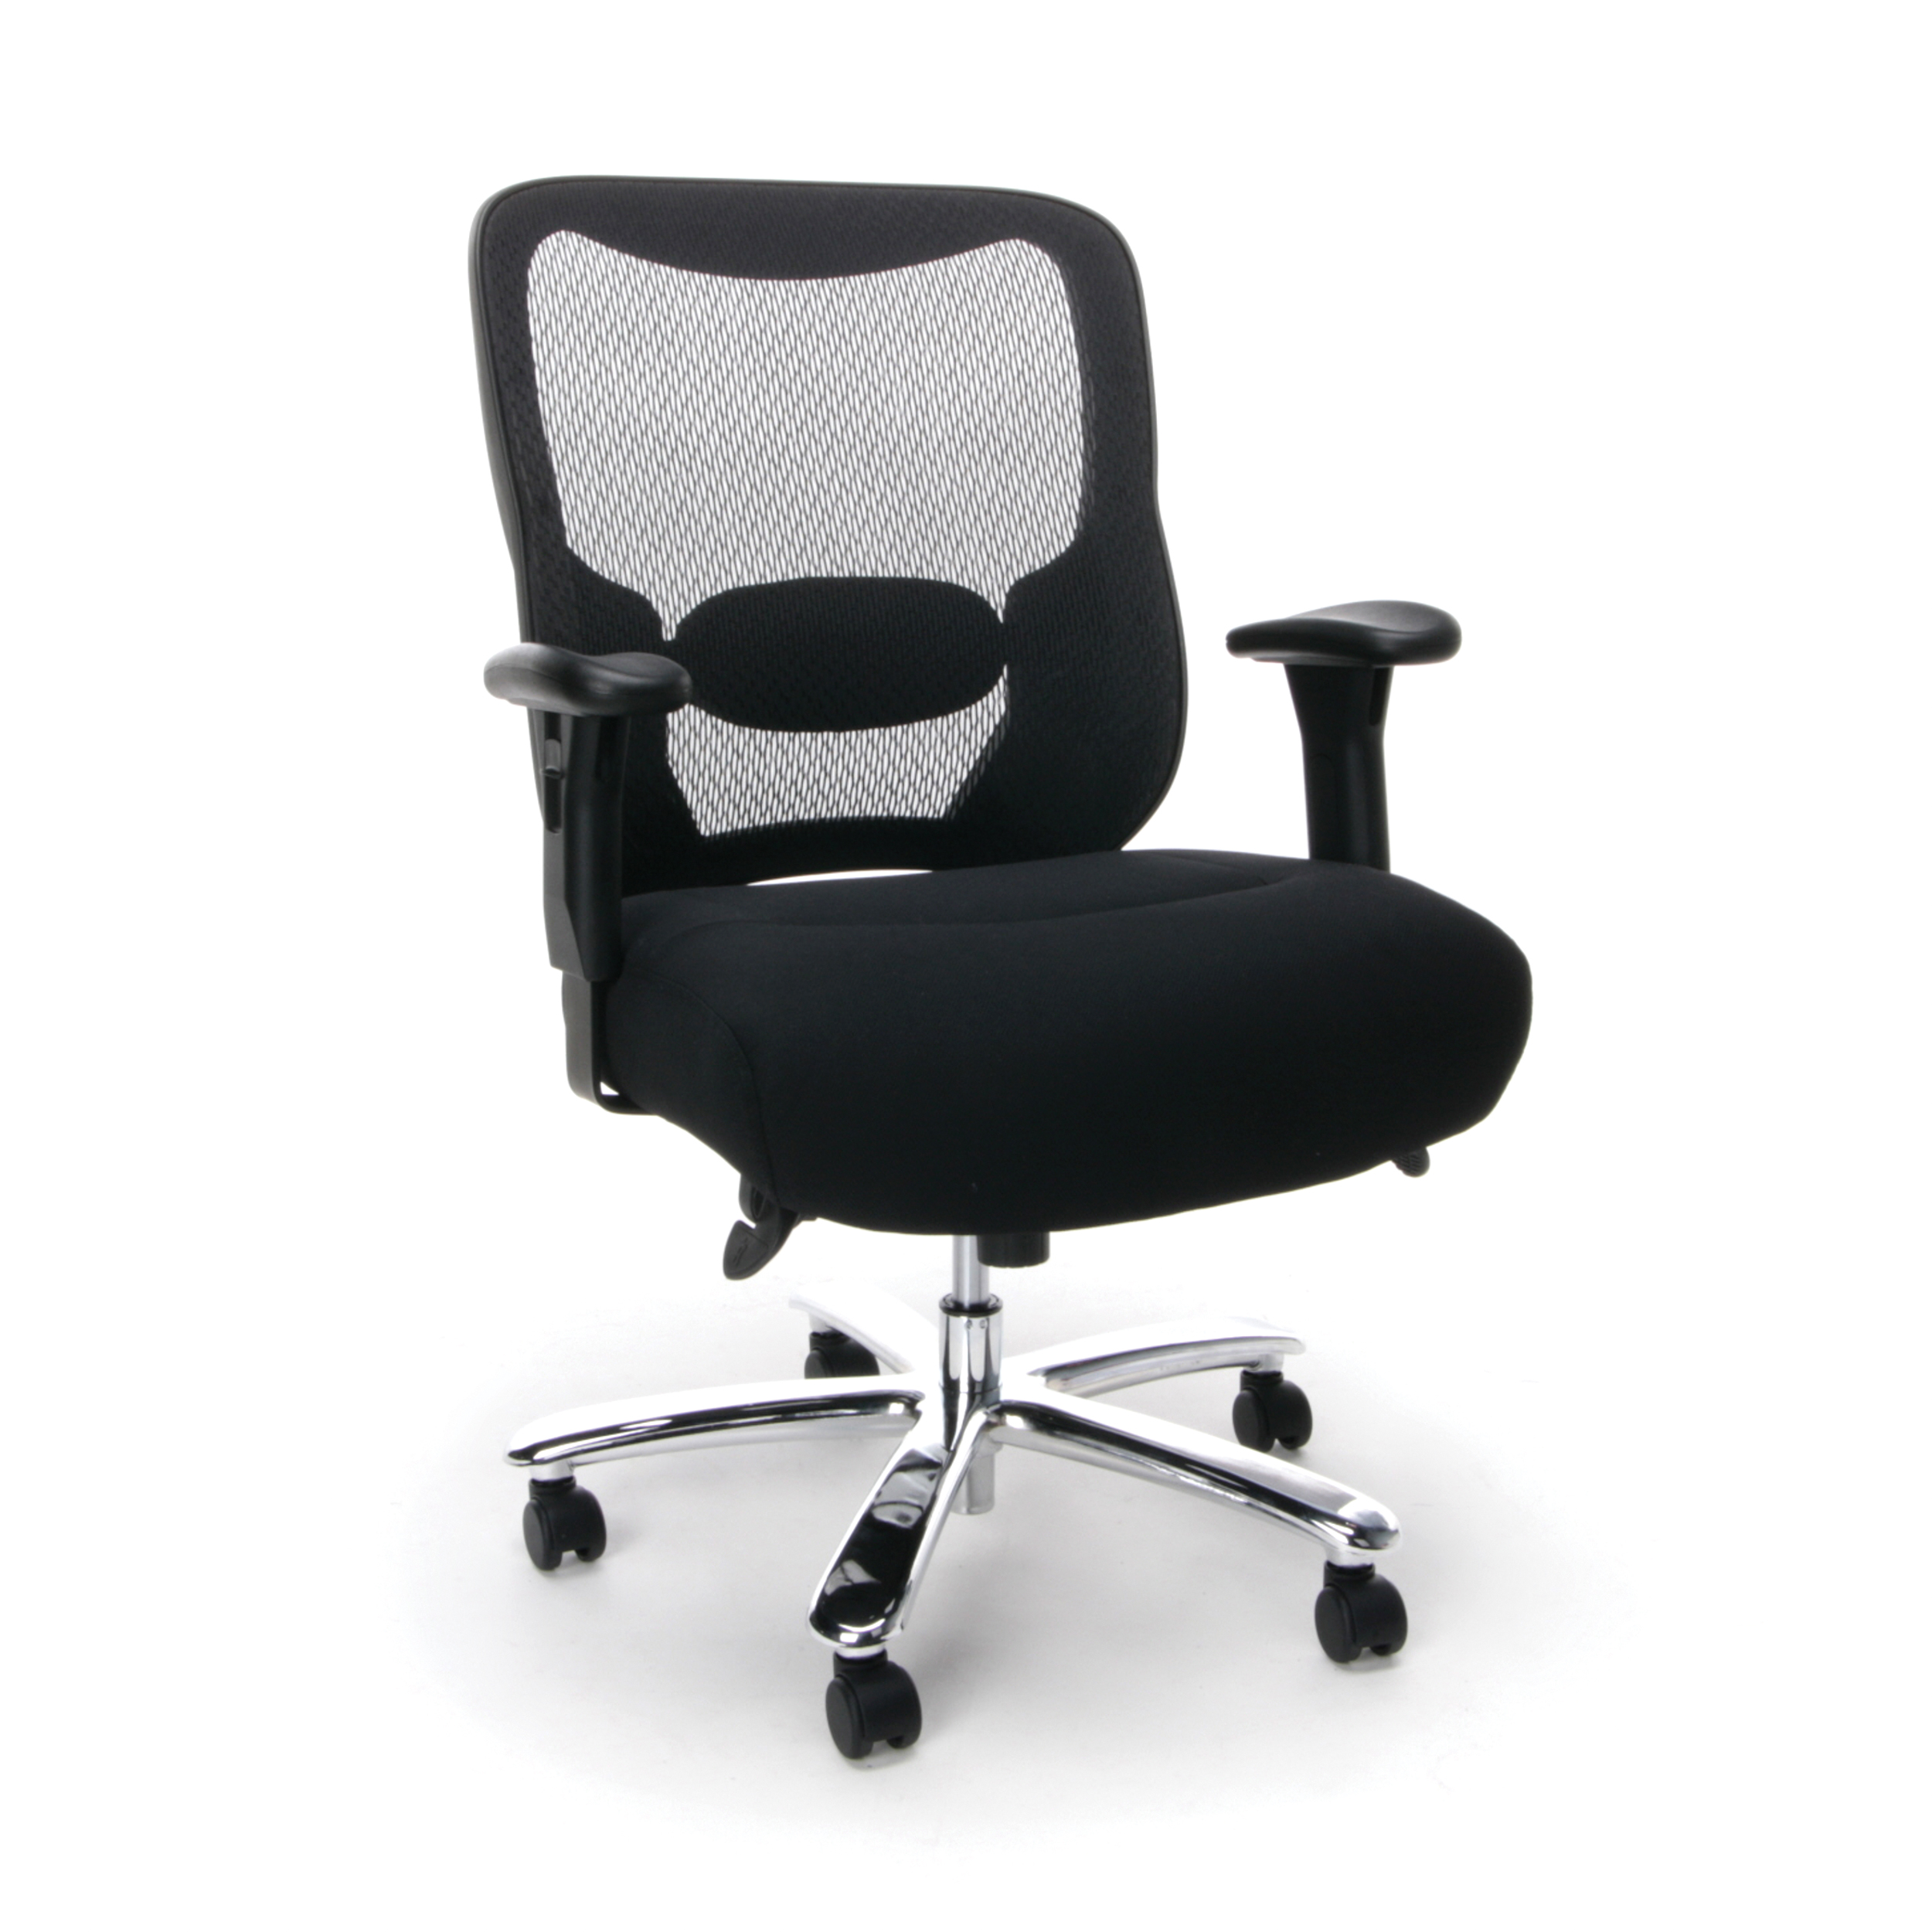 Merveilleux Essentials By OFM ESS 200 Big And Tall Swivel Mesh Office Chair With Arms,